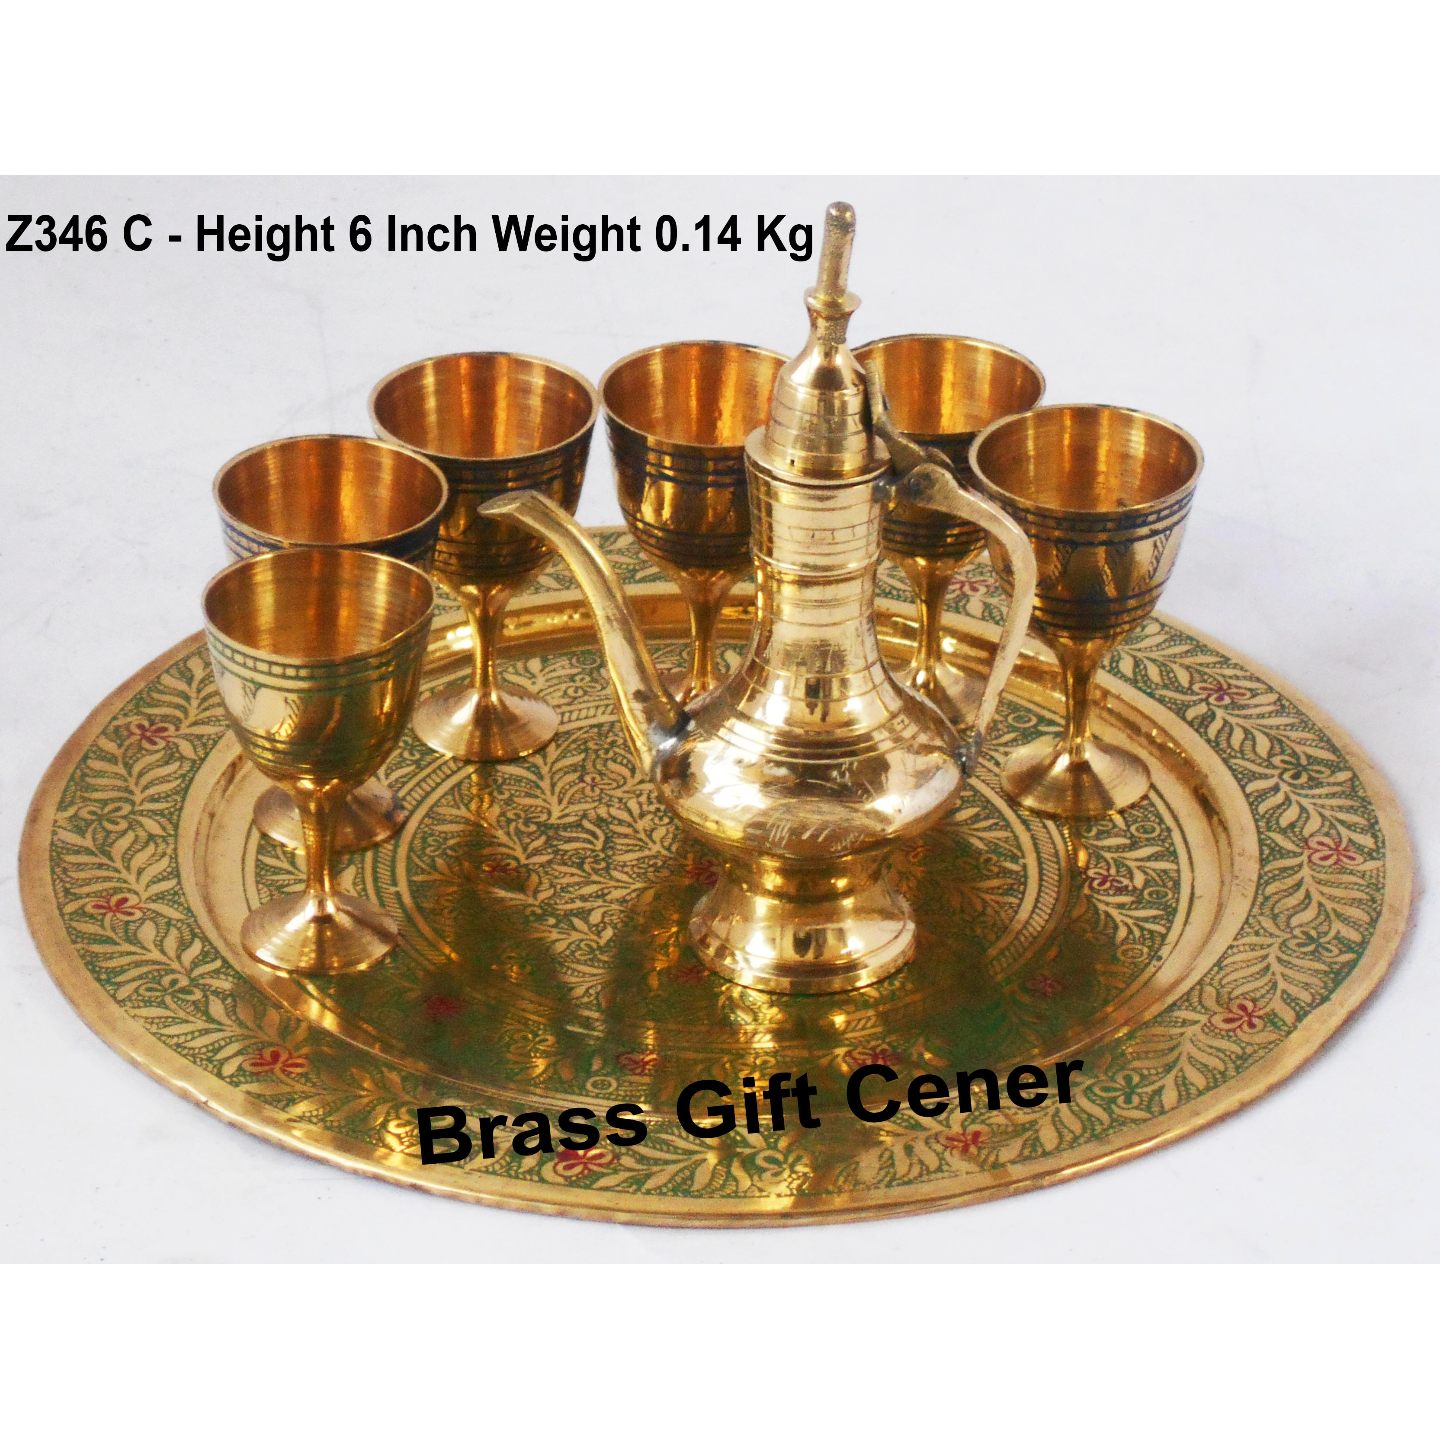 Brass Wine Set With Six Glass One Surahi MIniature Toy for Children Playing (Z346 C)